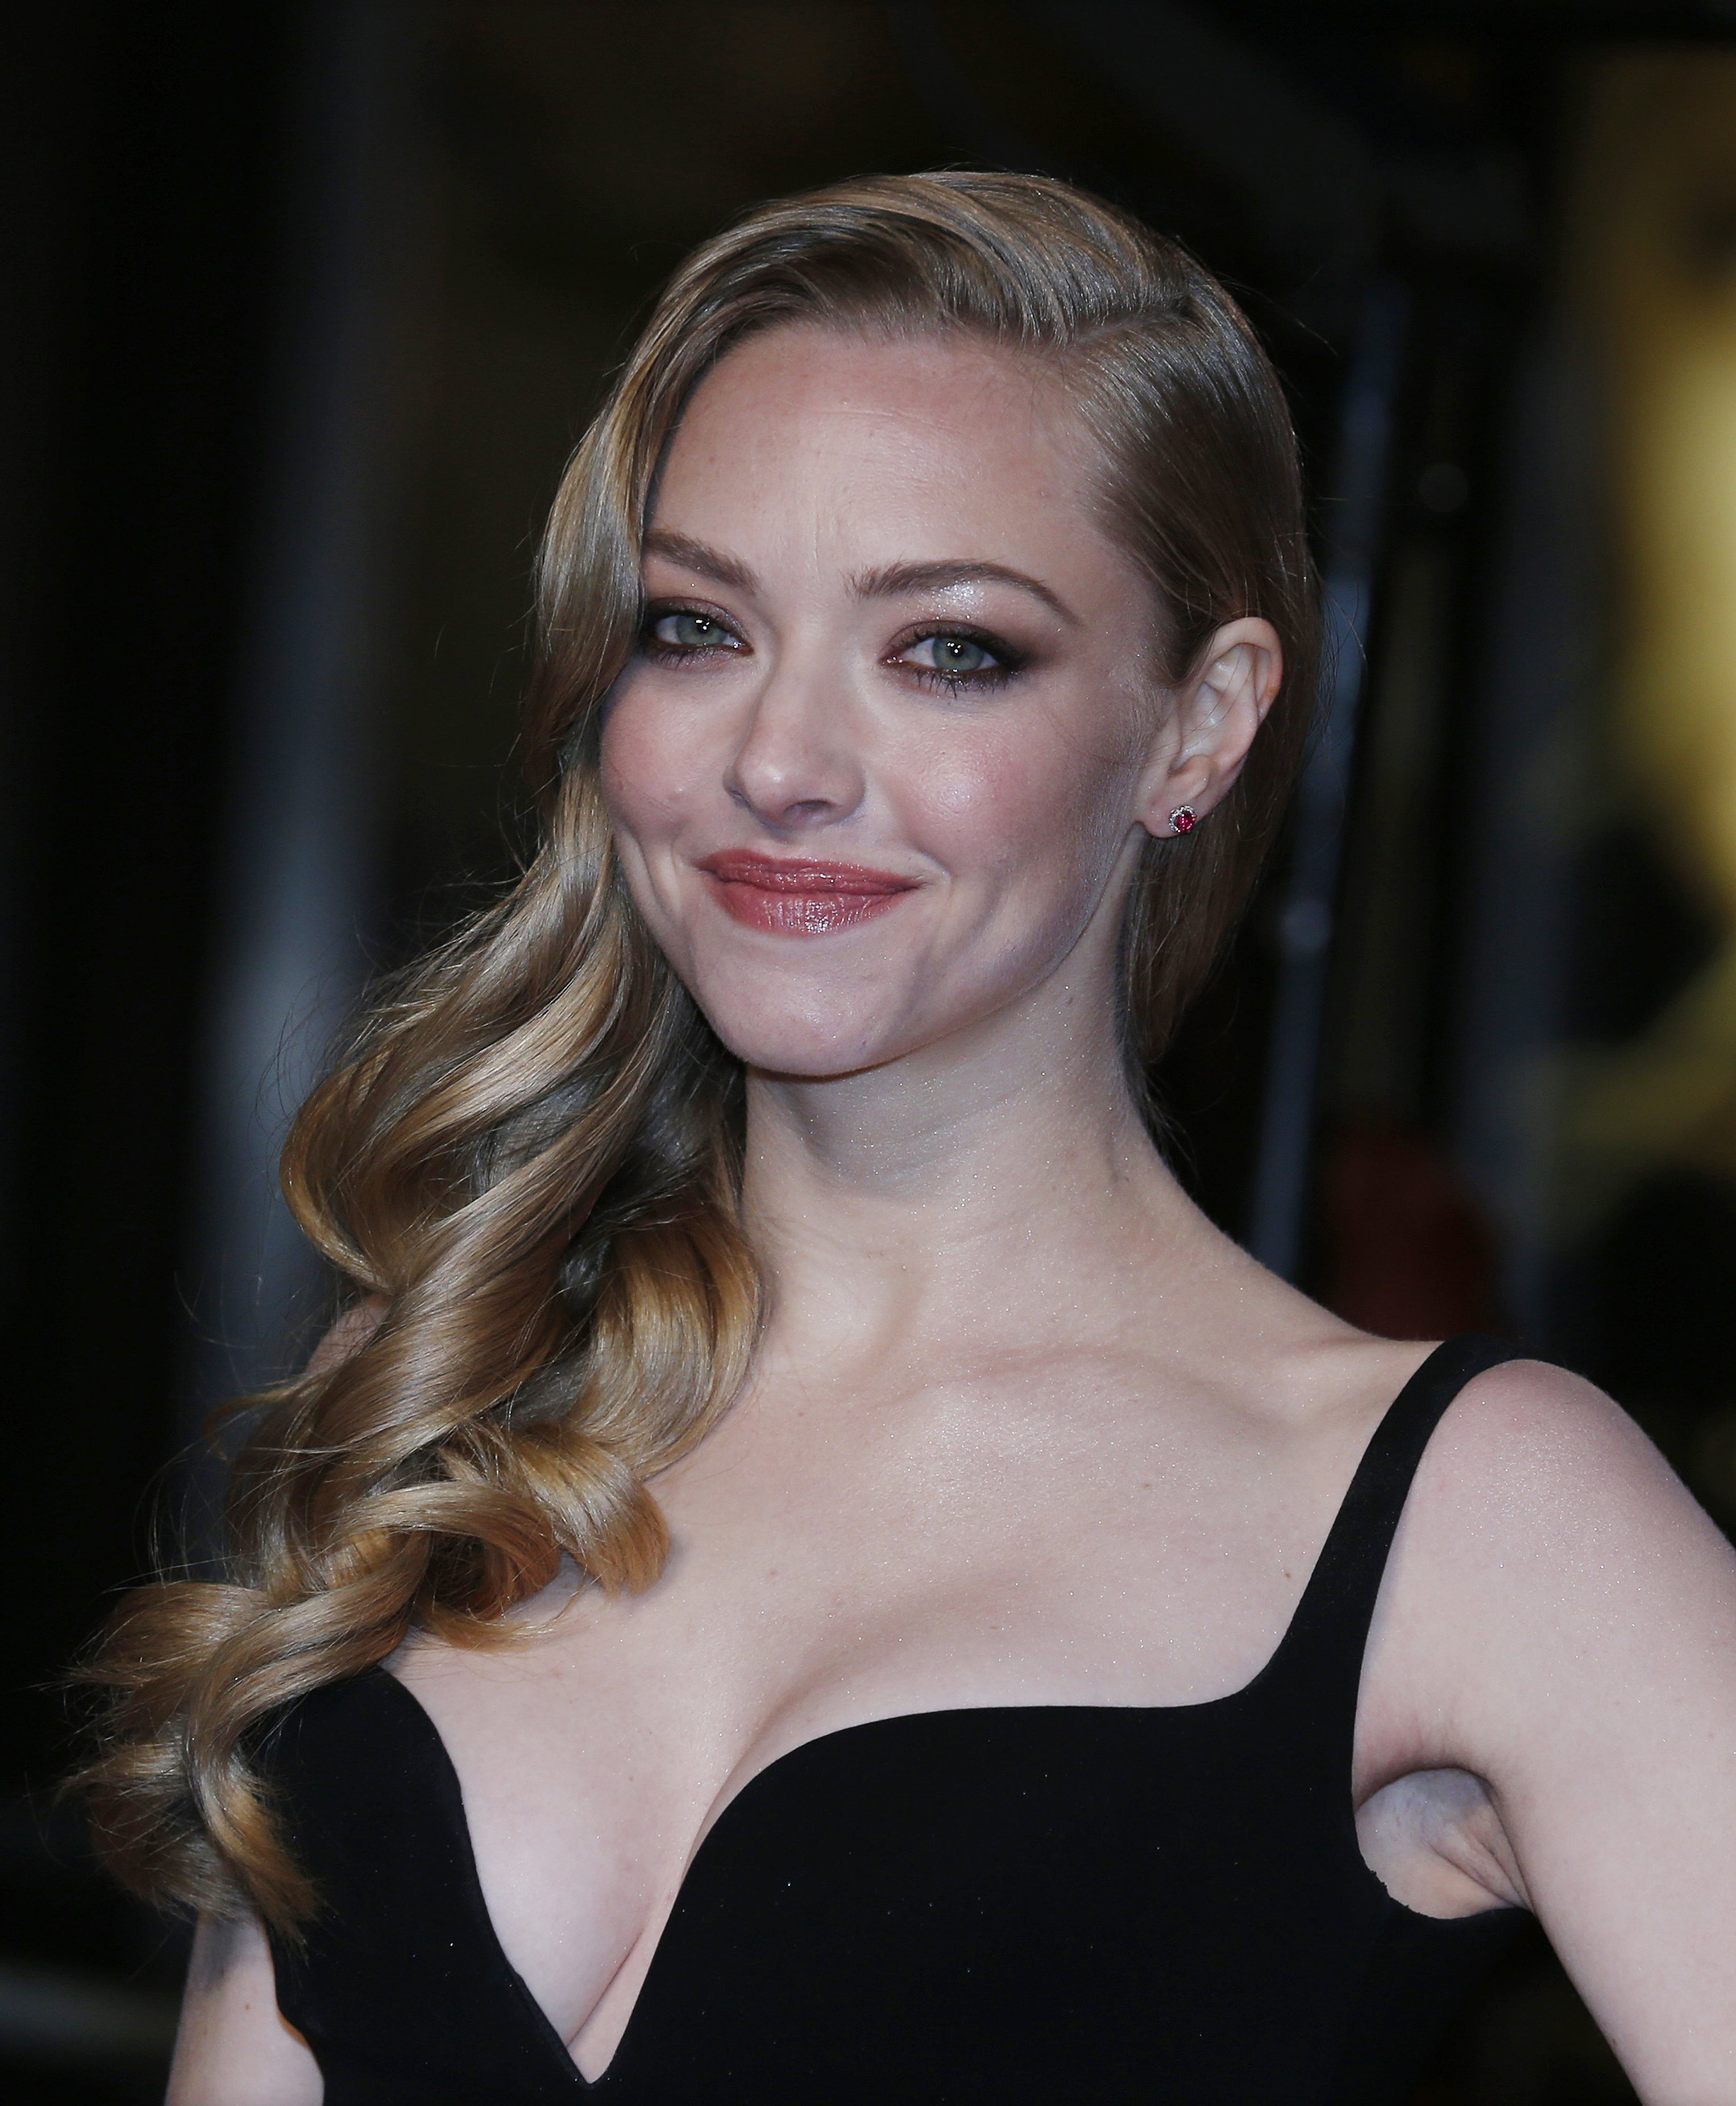 amanda seyfried boobs